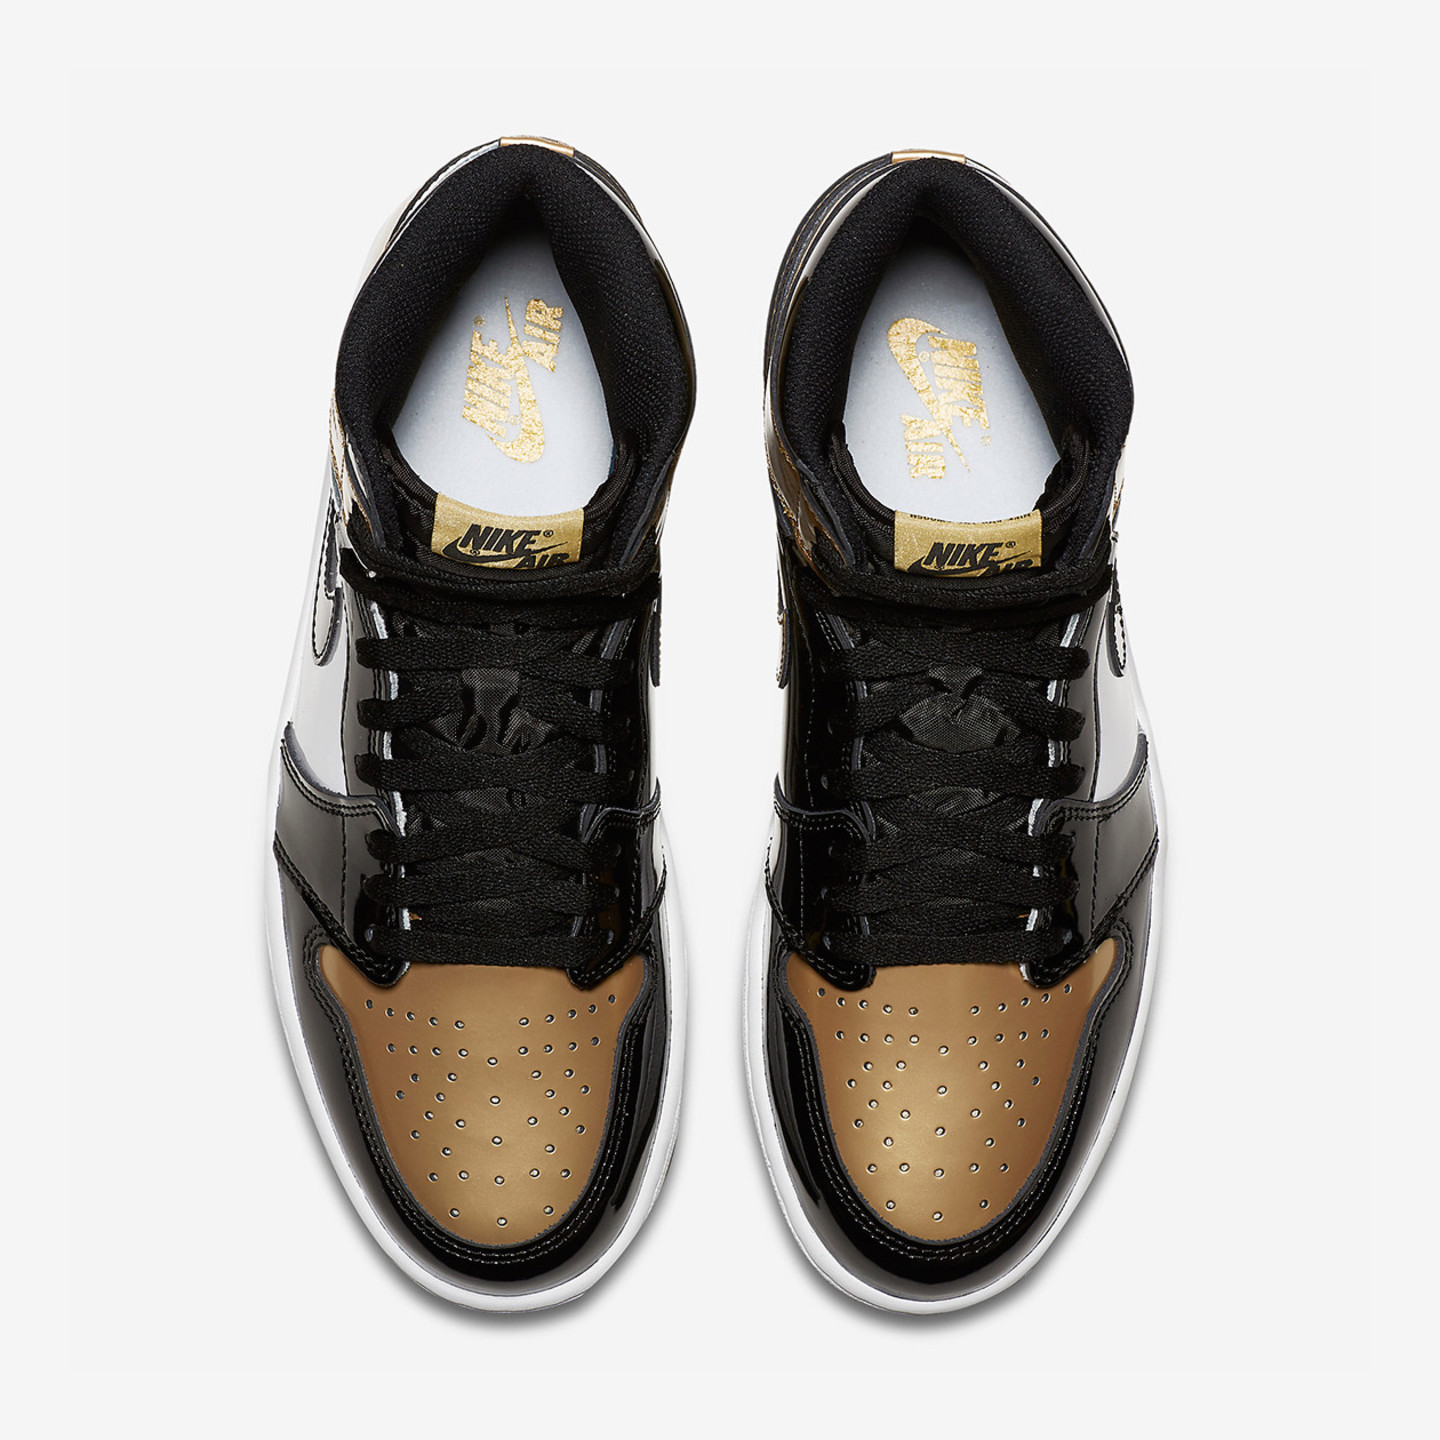 Jordan Air Jordan 1 Retro High OG NRG 'Gold Toe' Black / Metallic Gold / White 861428-007